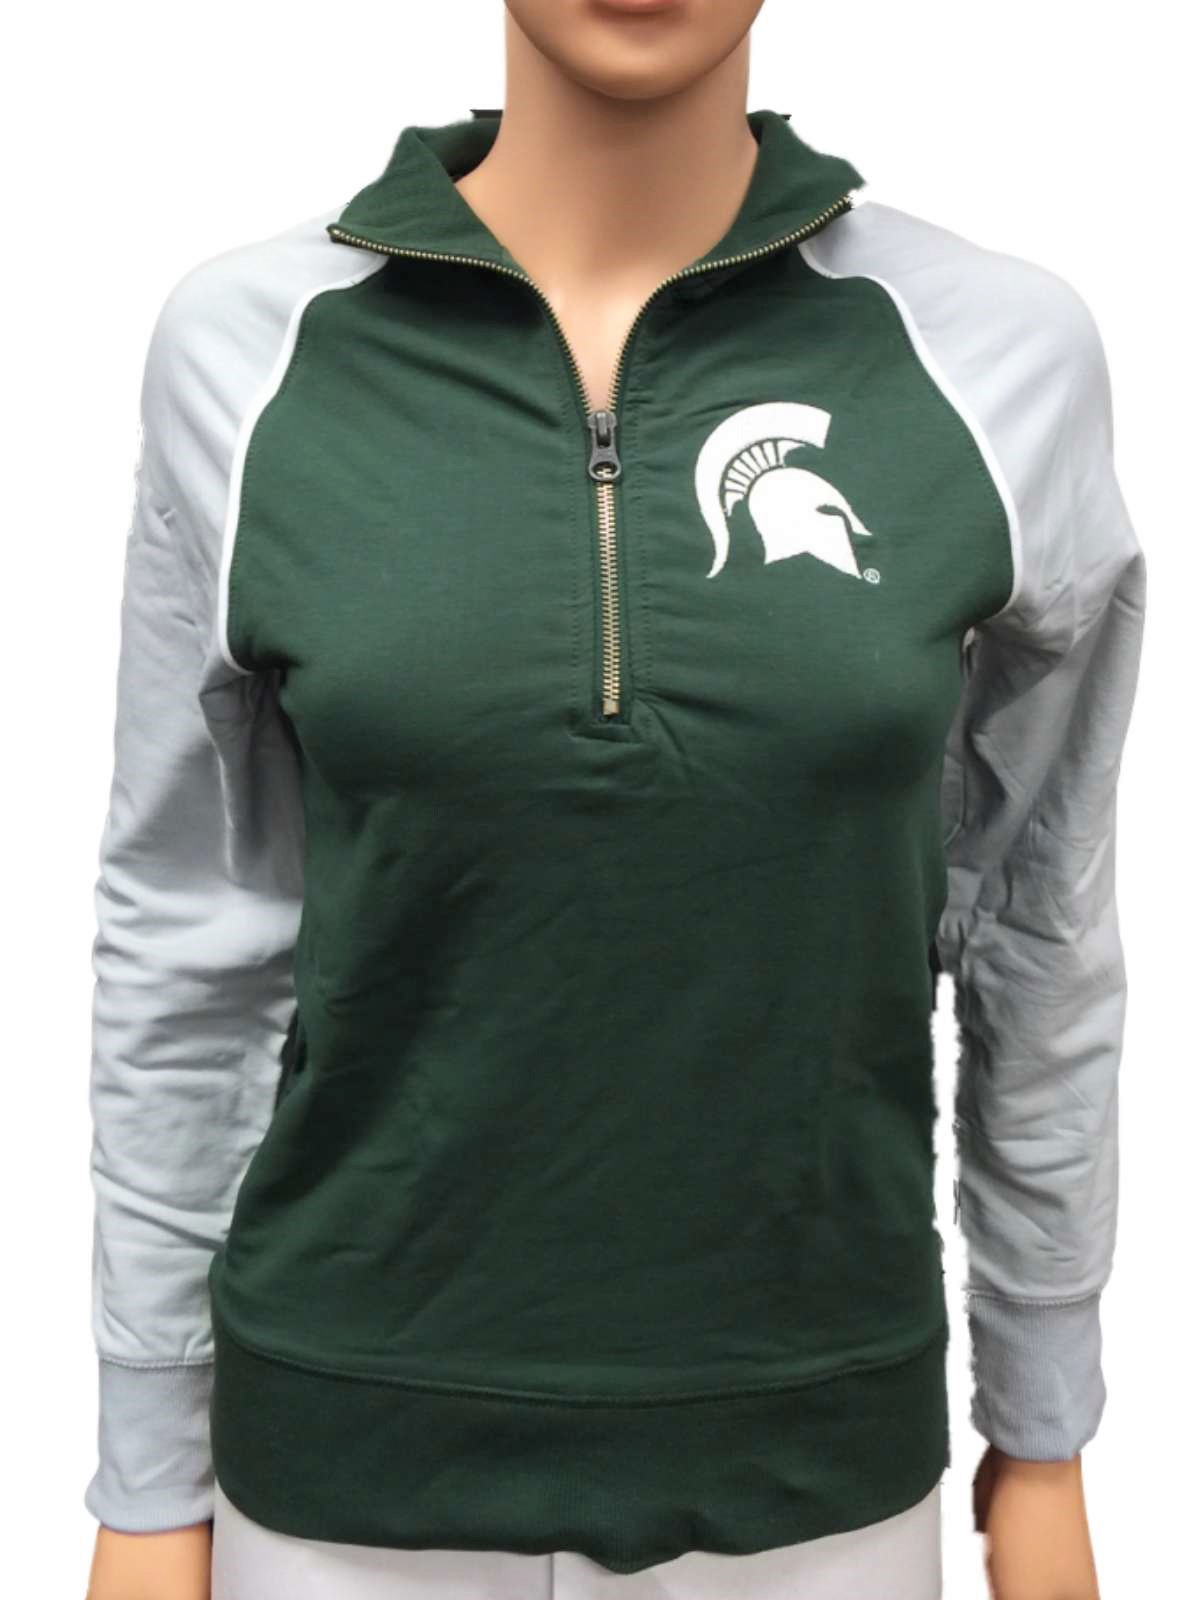 Michigan State Spartans GG Women Green Fitted 1 4 Zip Pullover Jacket (M) by